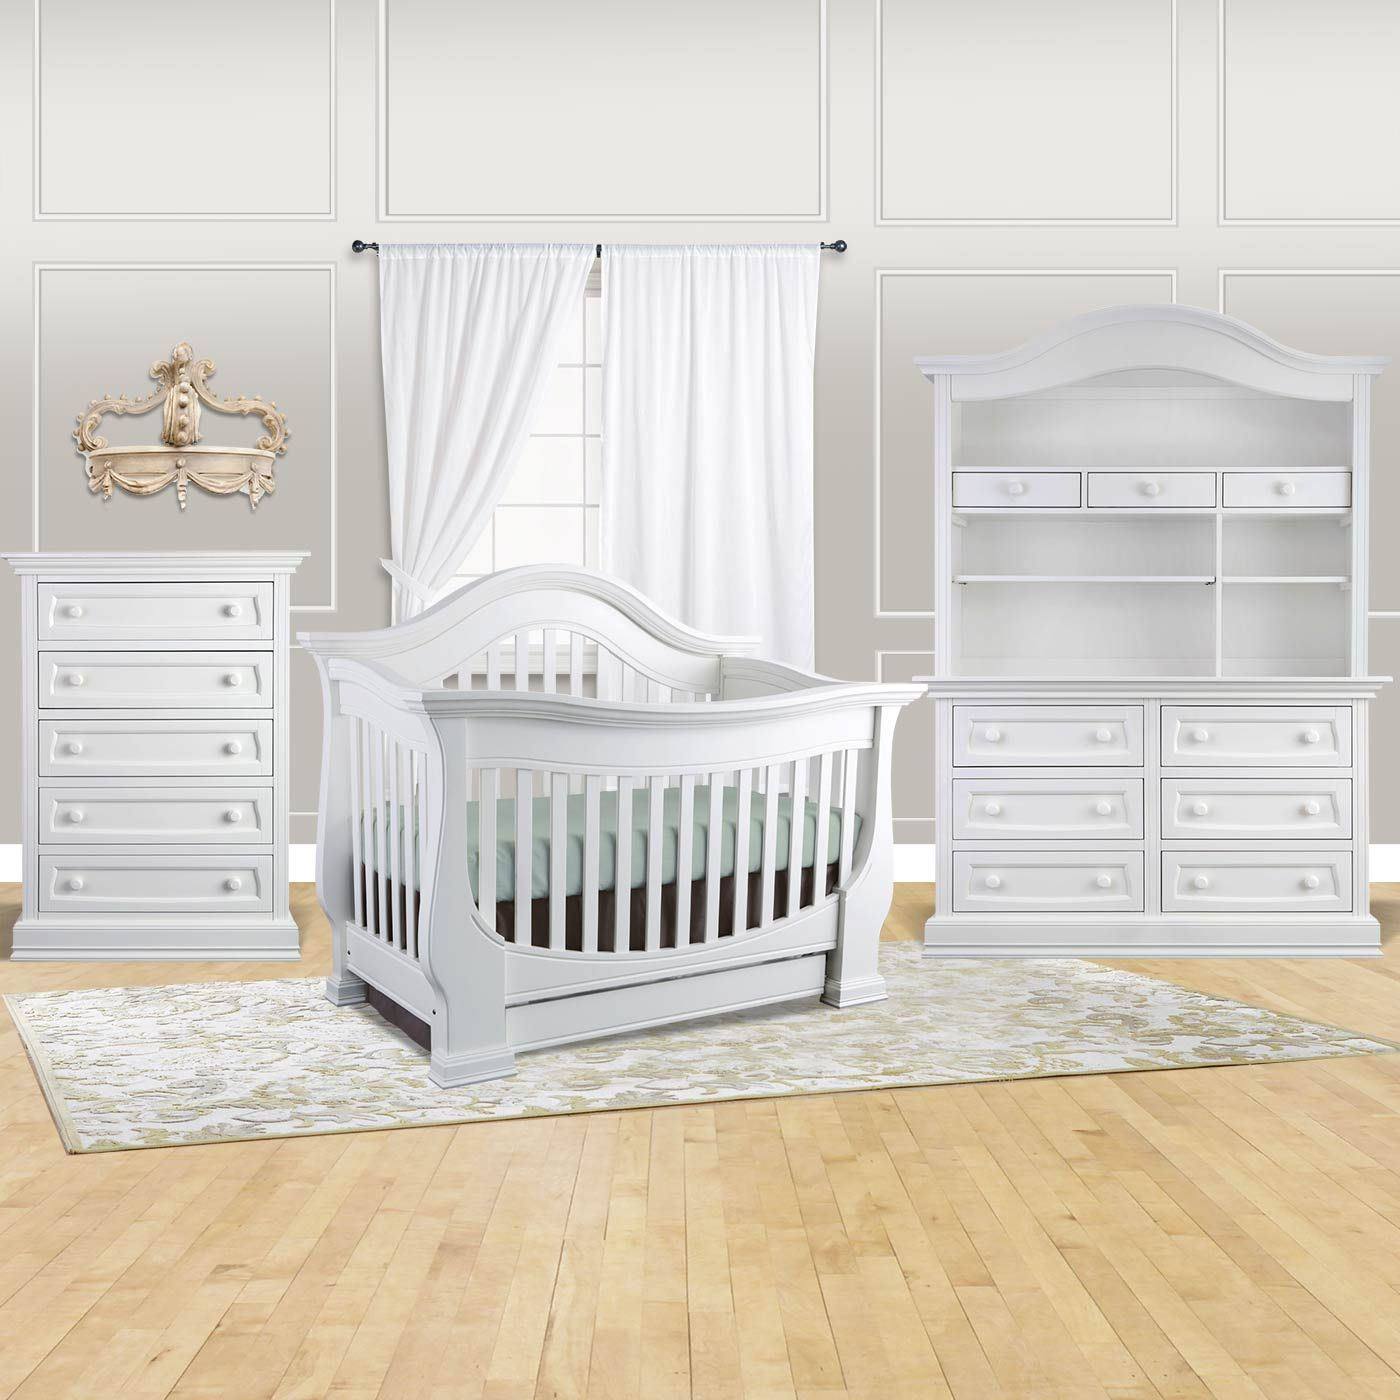 30 Baby Appleseed Furniture Reviews Interior Design